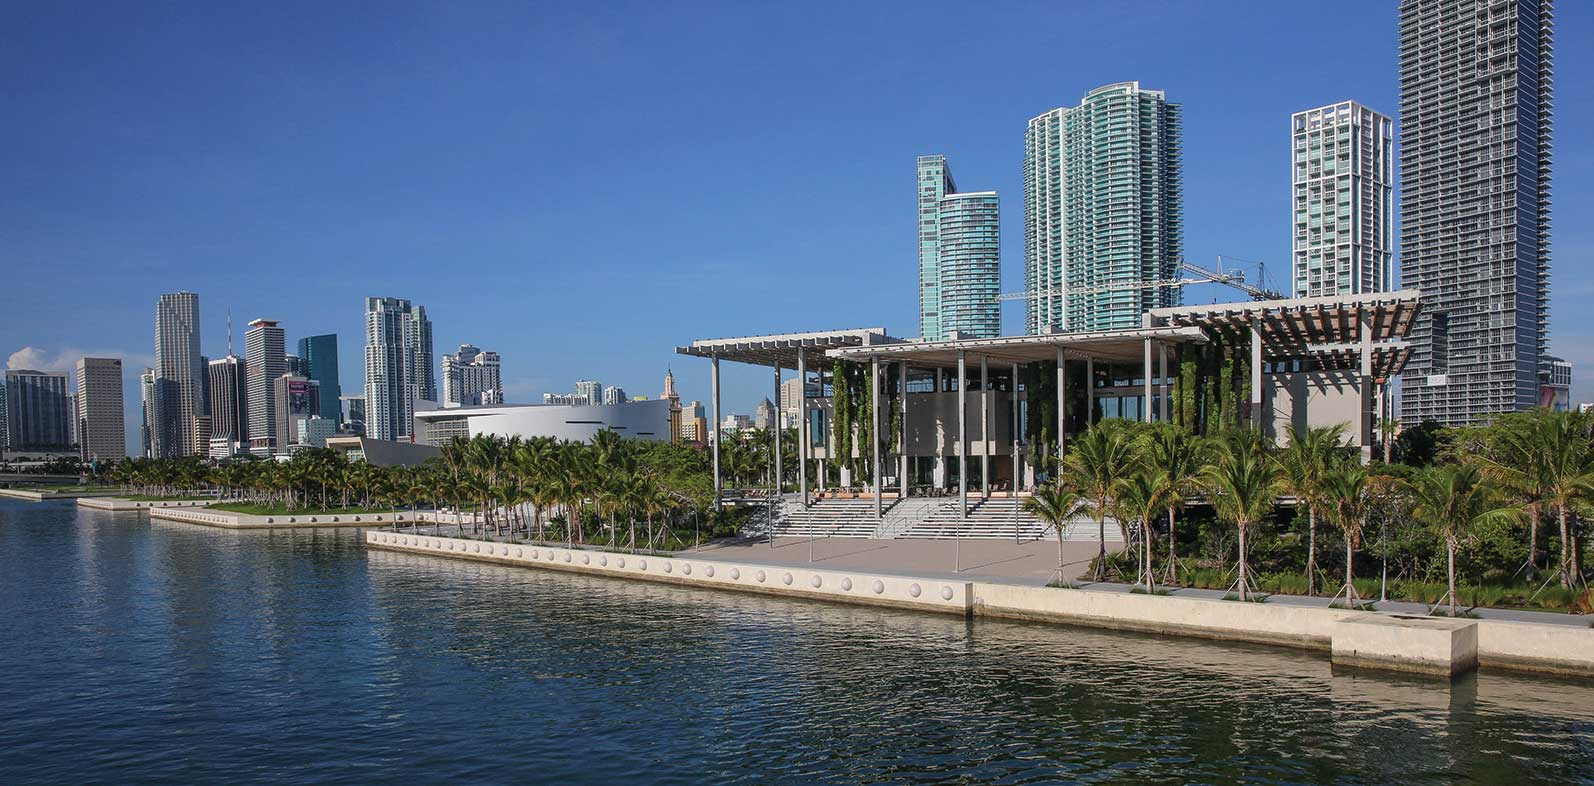 Pérez Art Museum Miami adds to growing collection, attendance